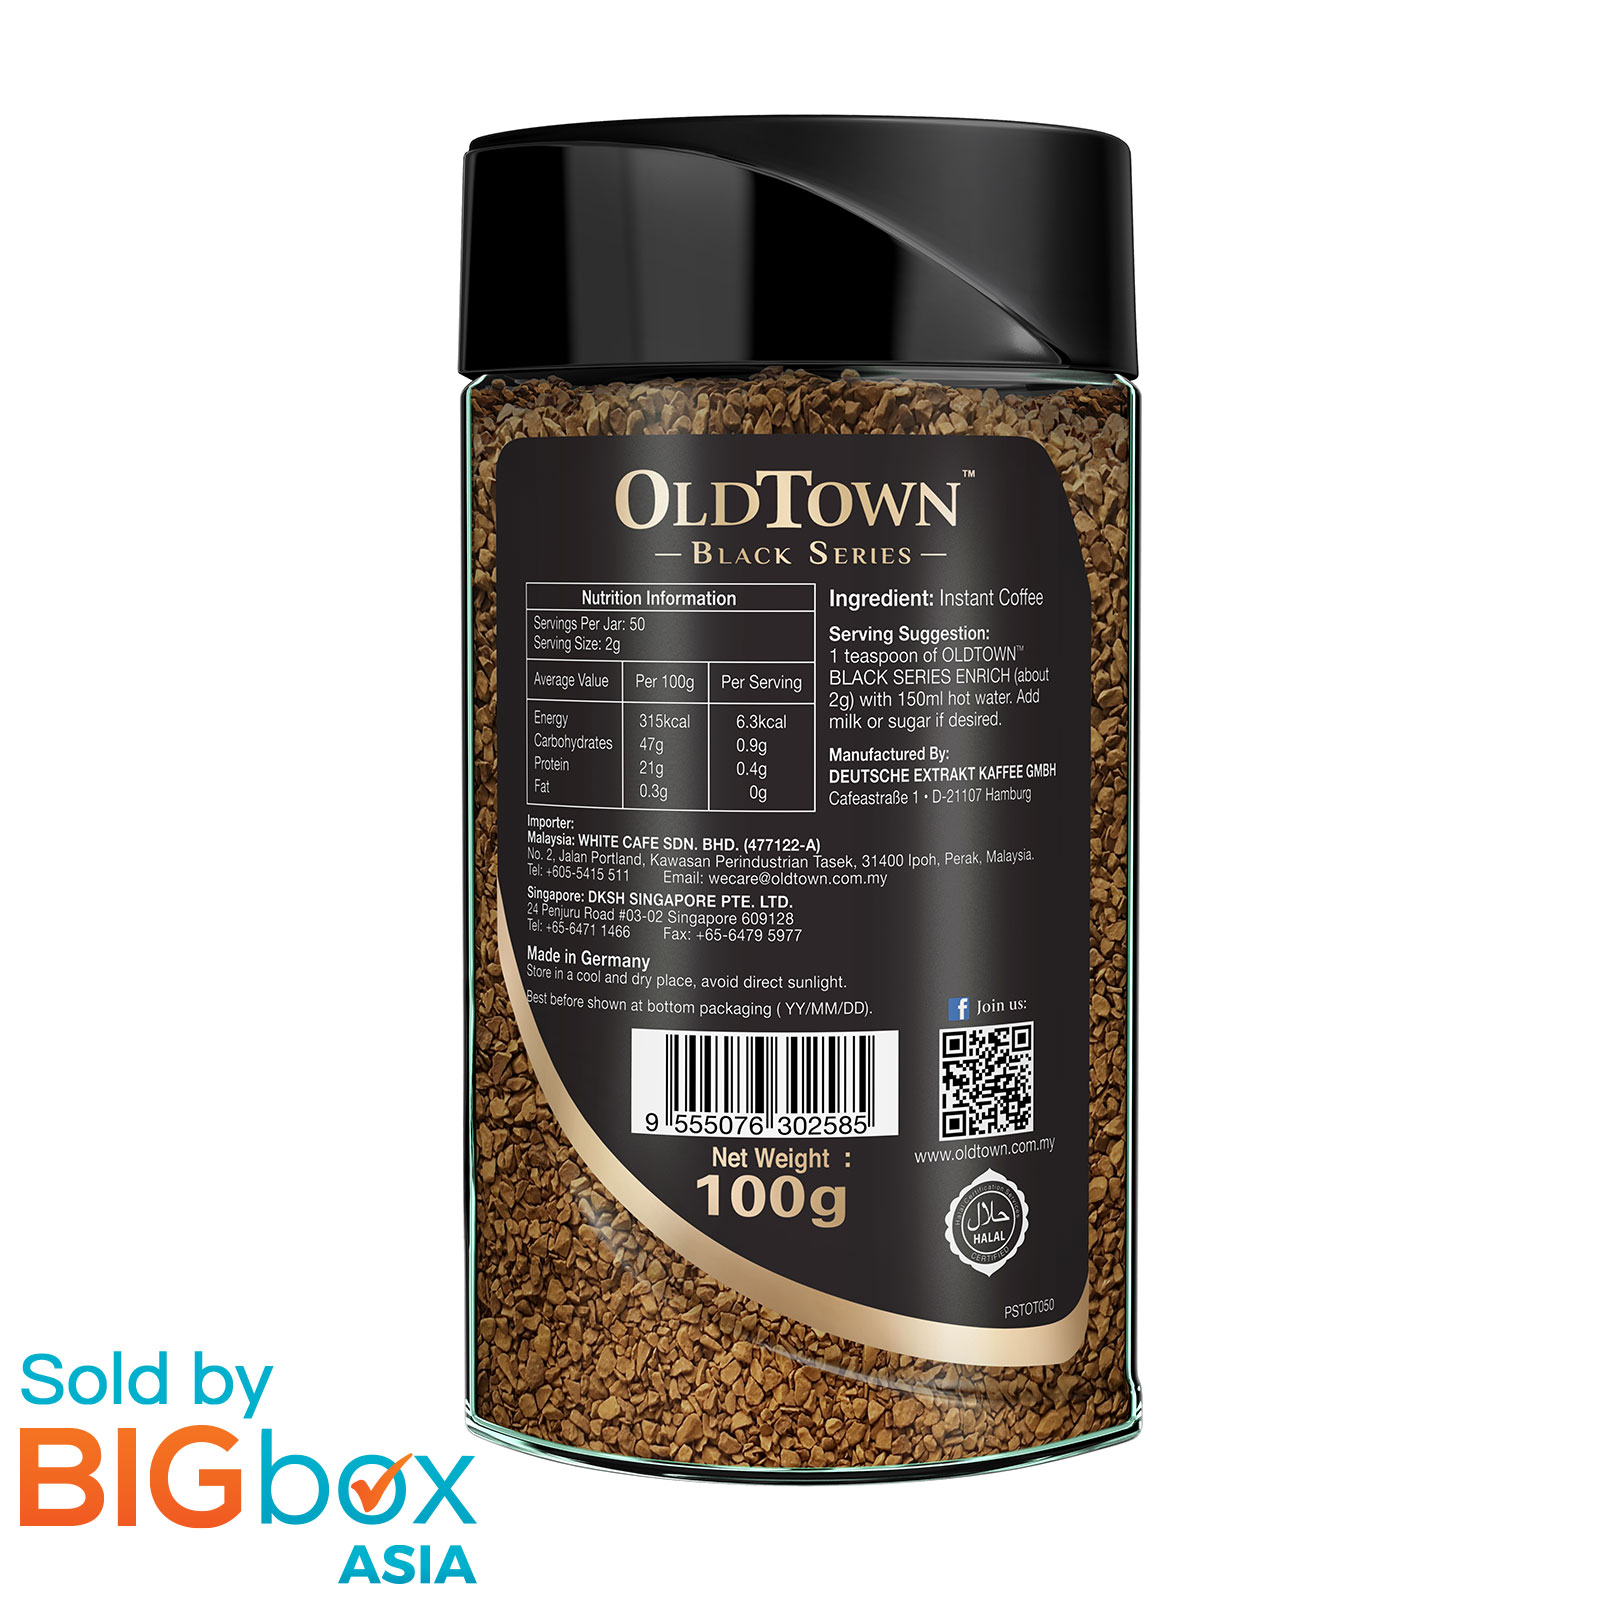 OldTown Black Series Enrich Freeze Dried Instant Coffee 100g - Germany